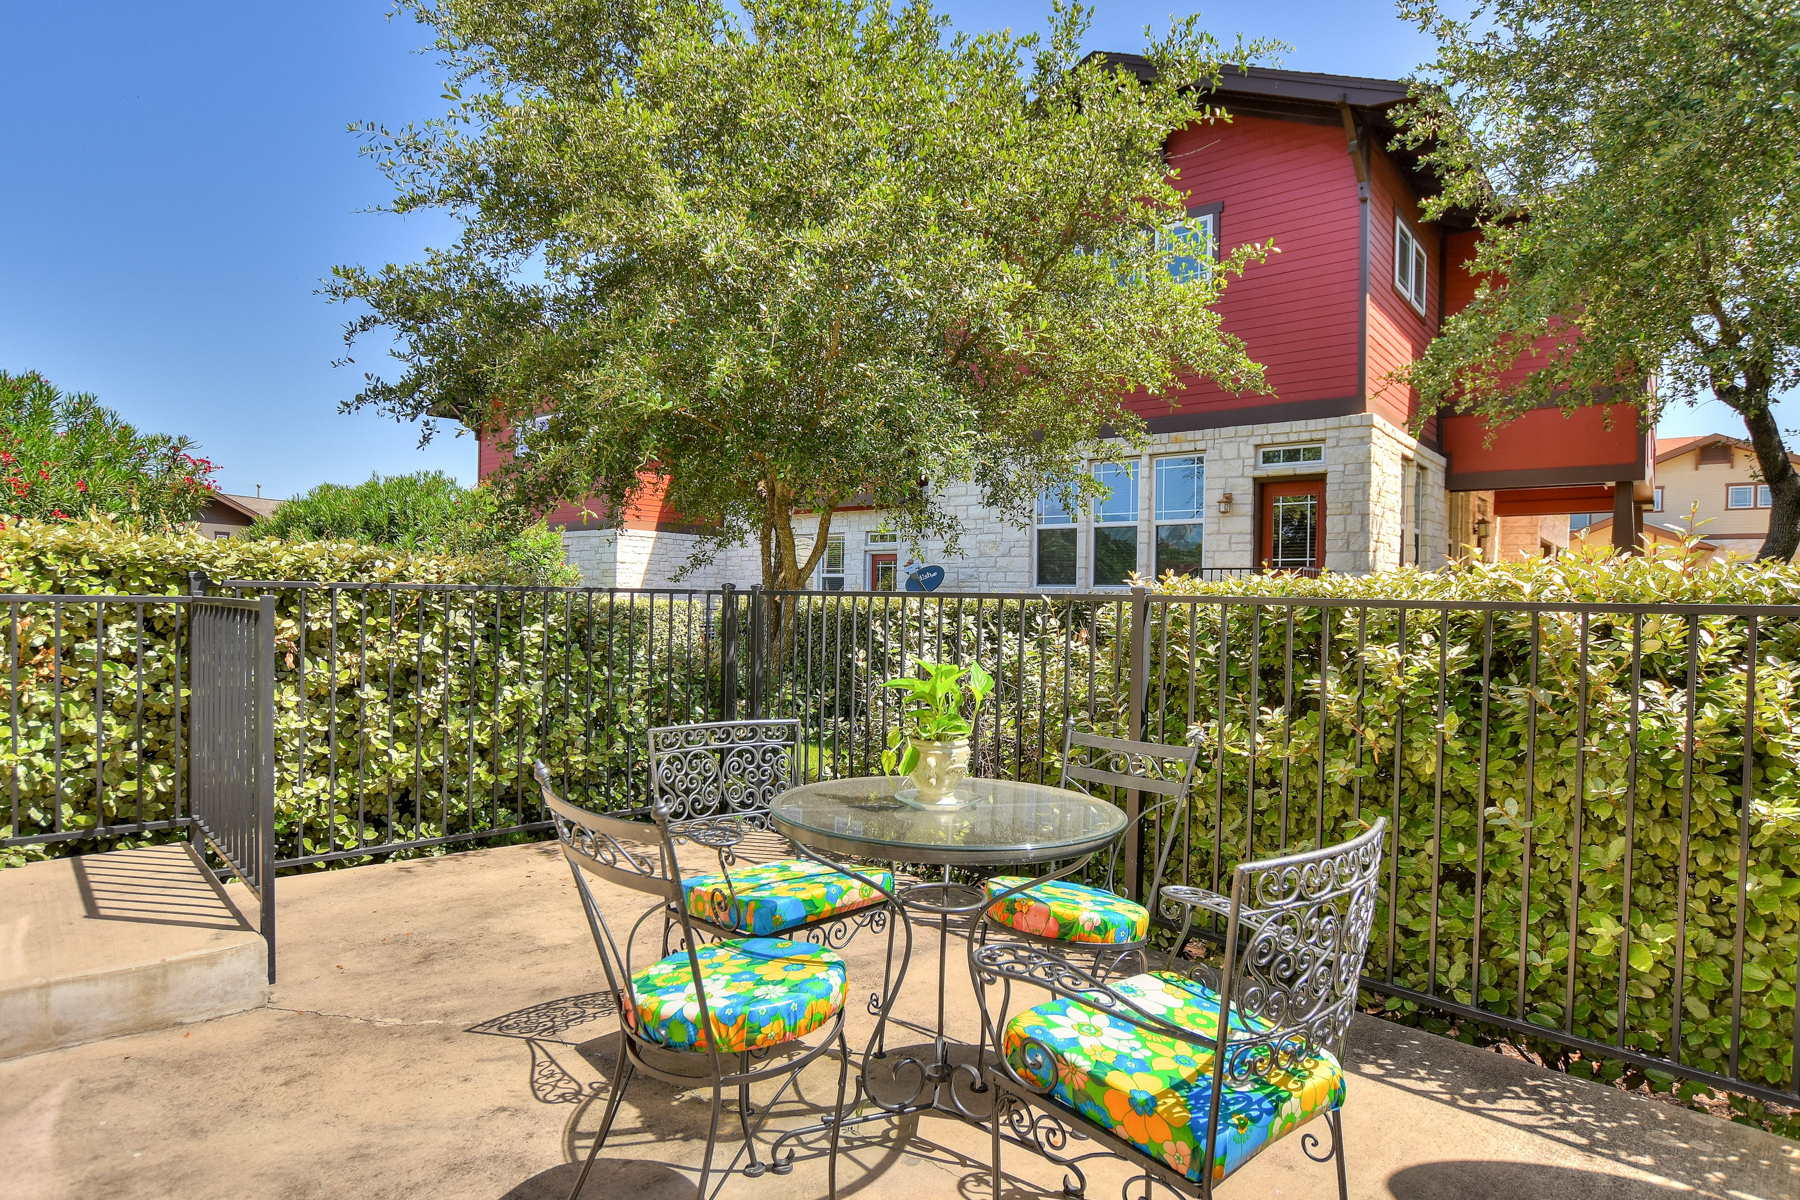 Additional photo for property listing at Luxury Condo in Twin Creeks 2930 Grand Oaks Loop 1603 Cedar Park, Texas 78613 United States